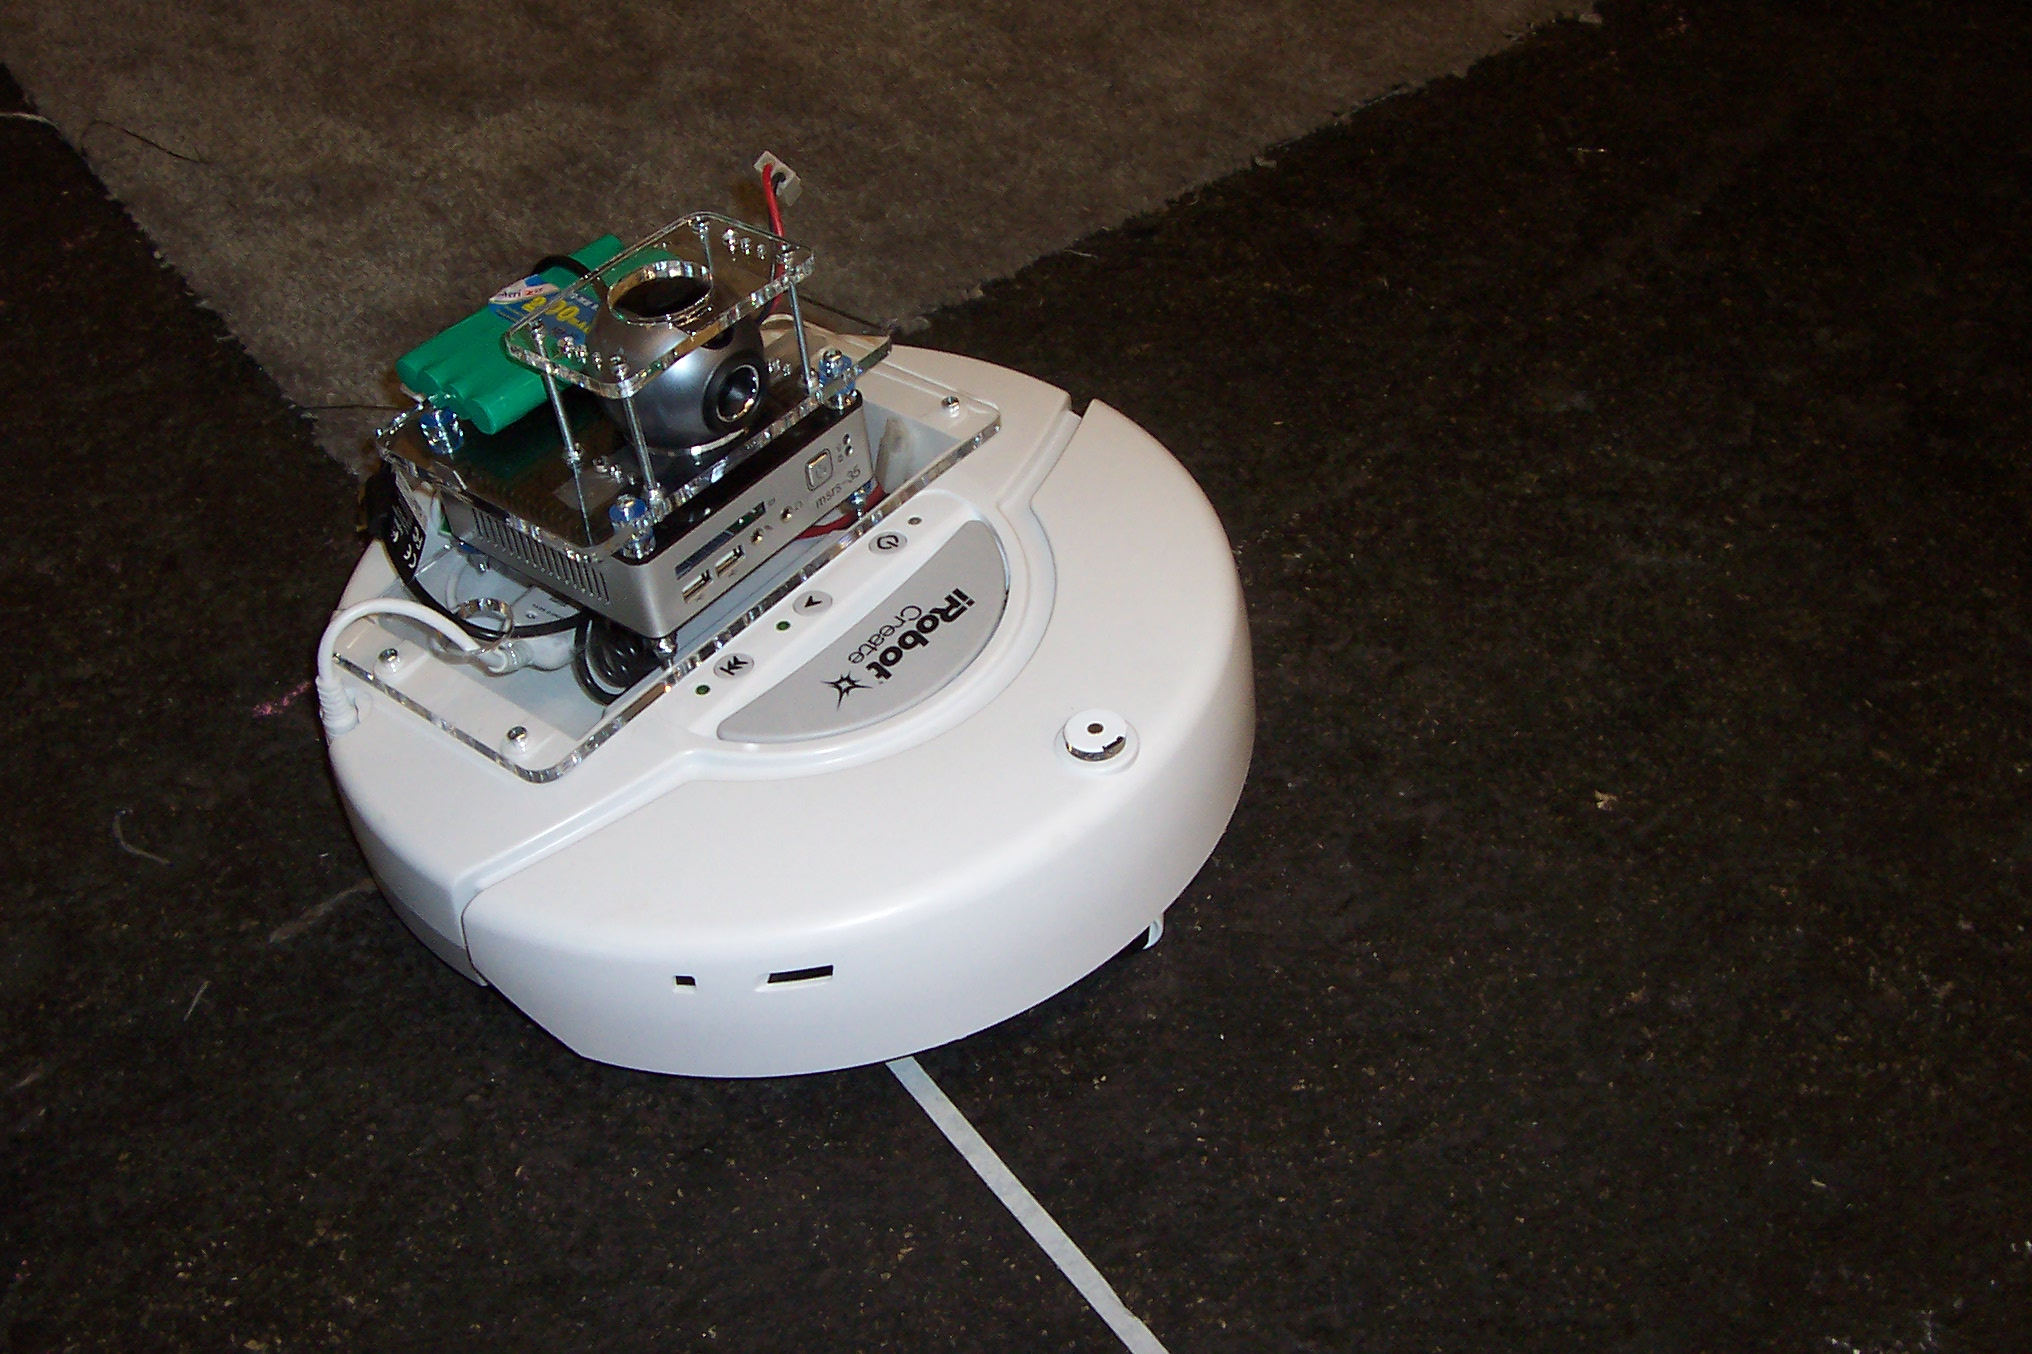 iRobot with mounted camera and minicomputer